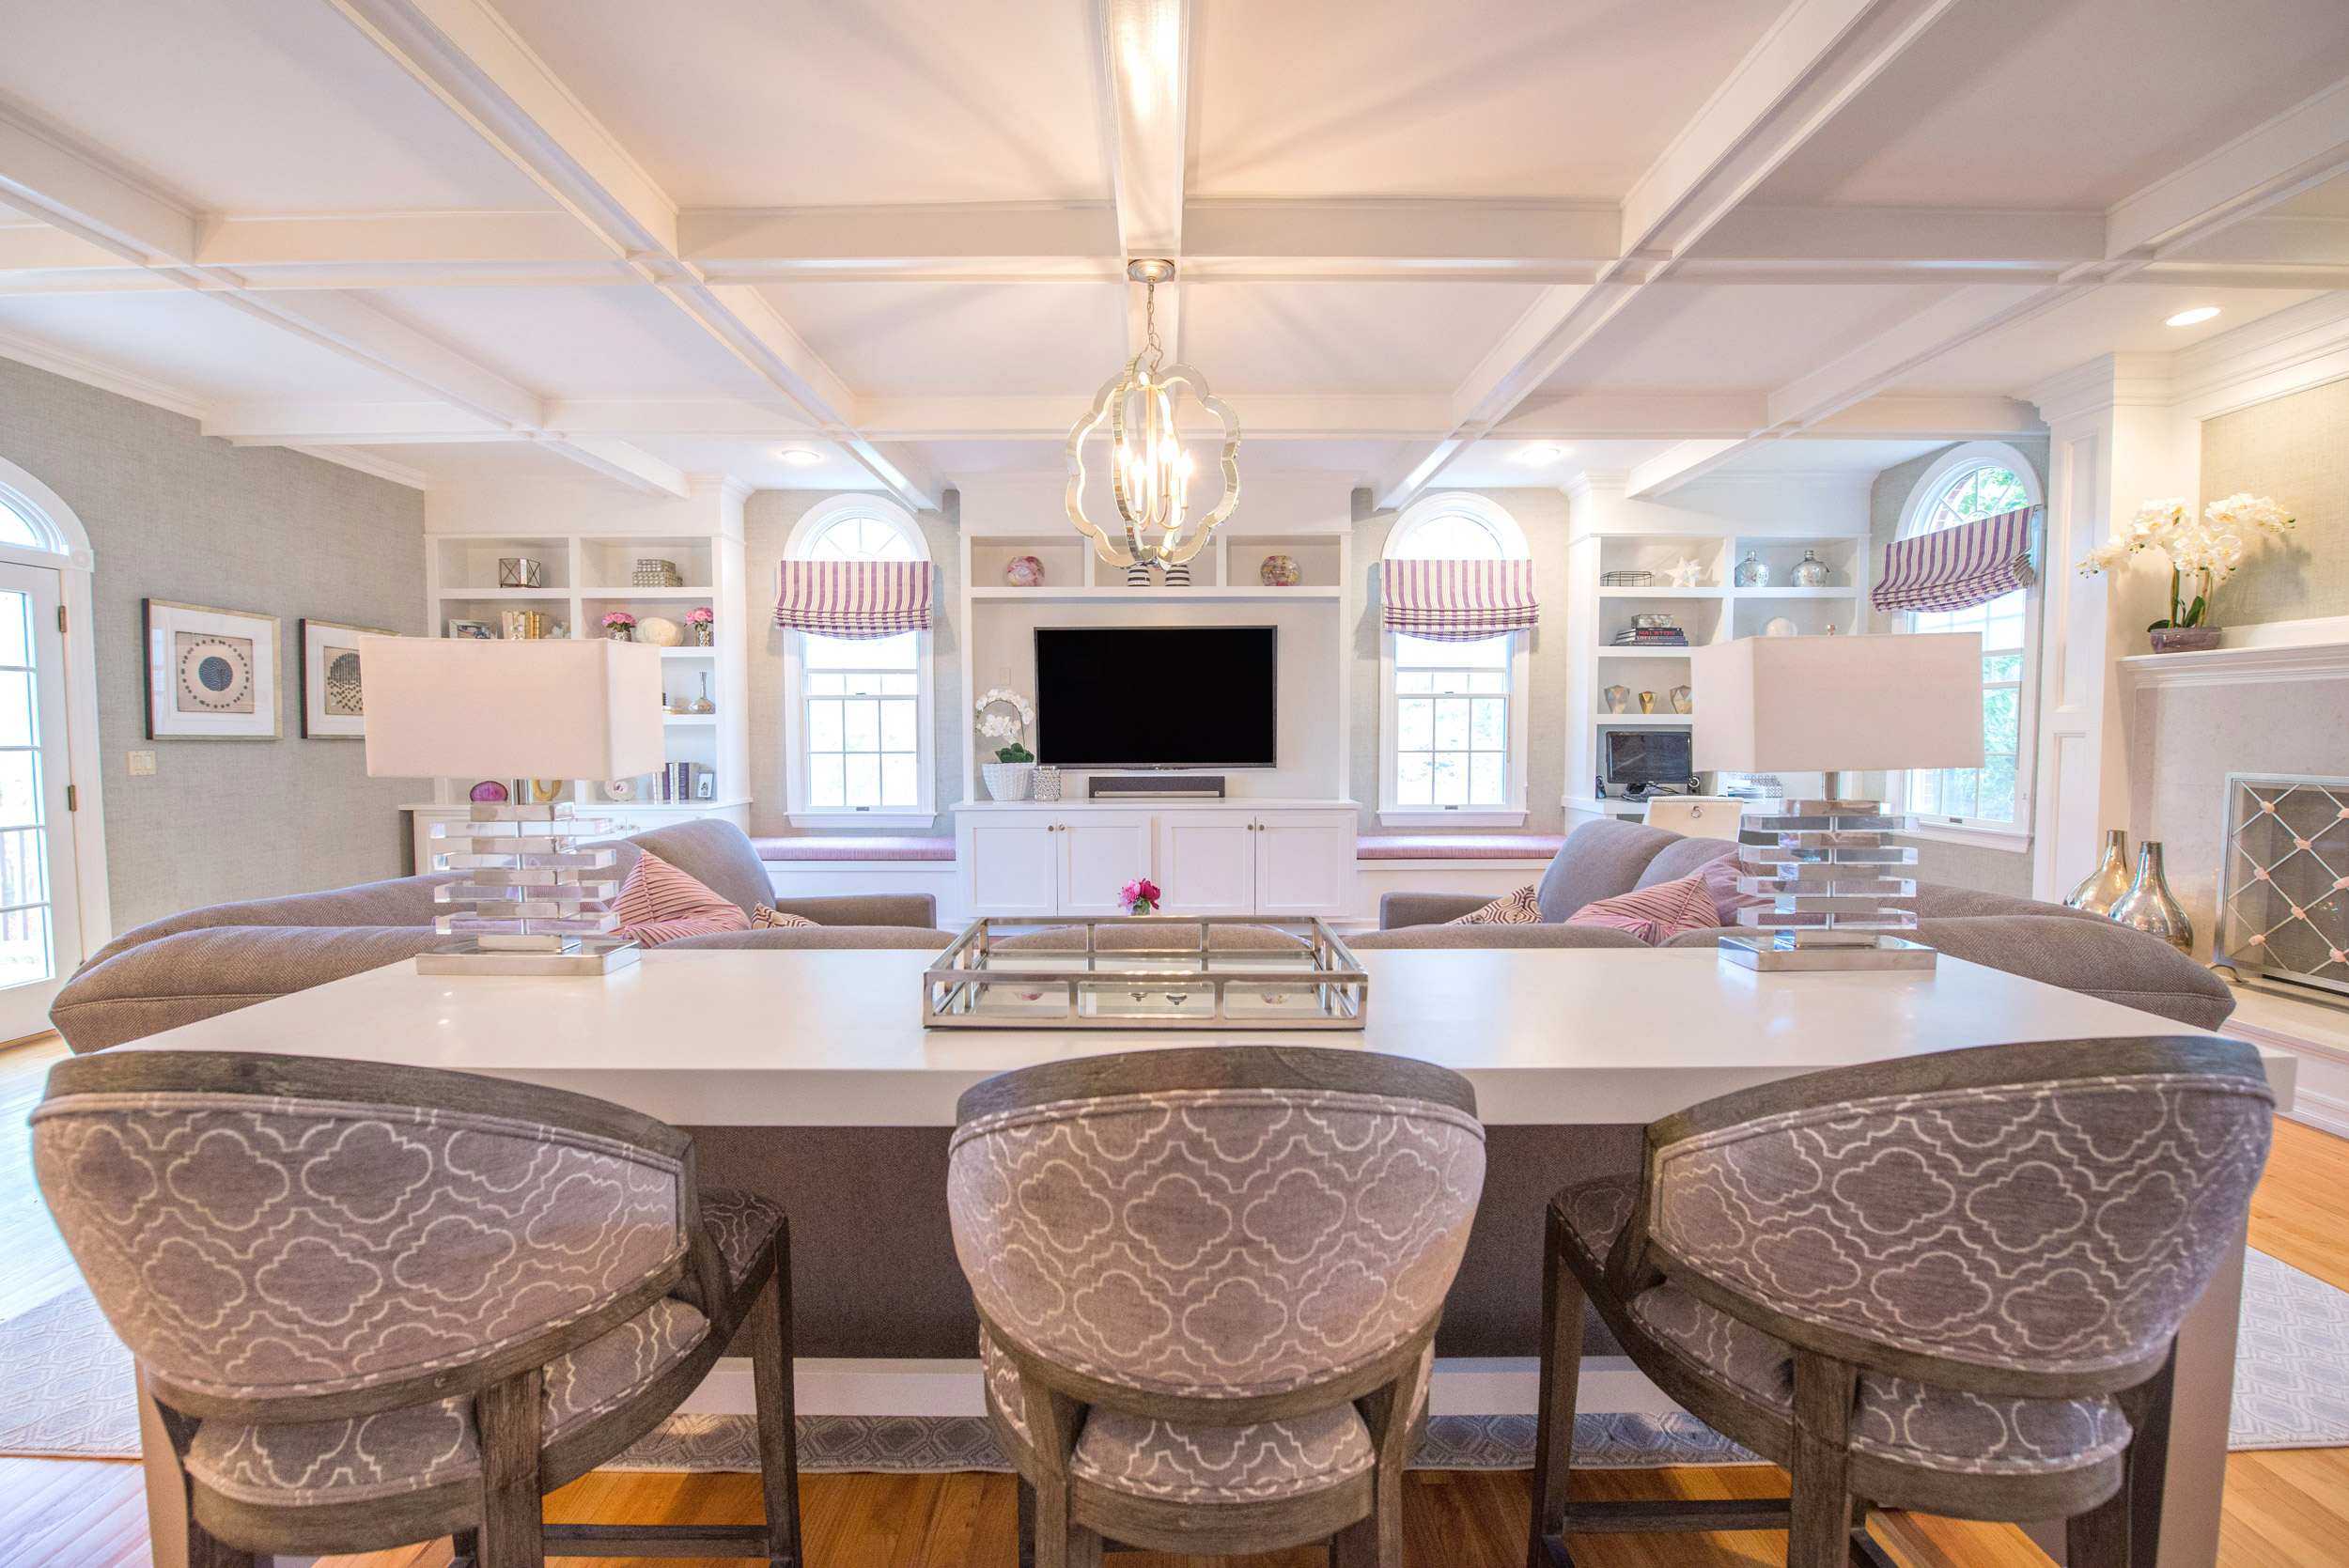 Emily Wallach Bergen County And New York Interior Design Living With Light